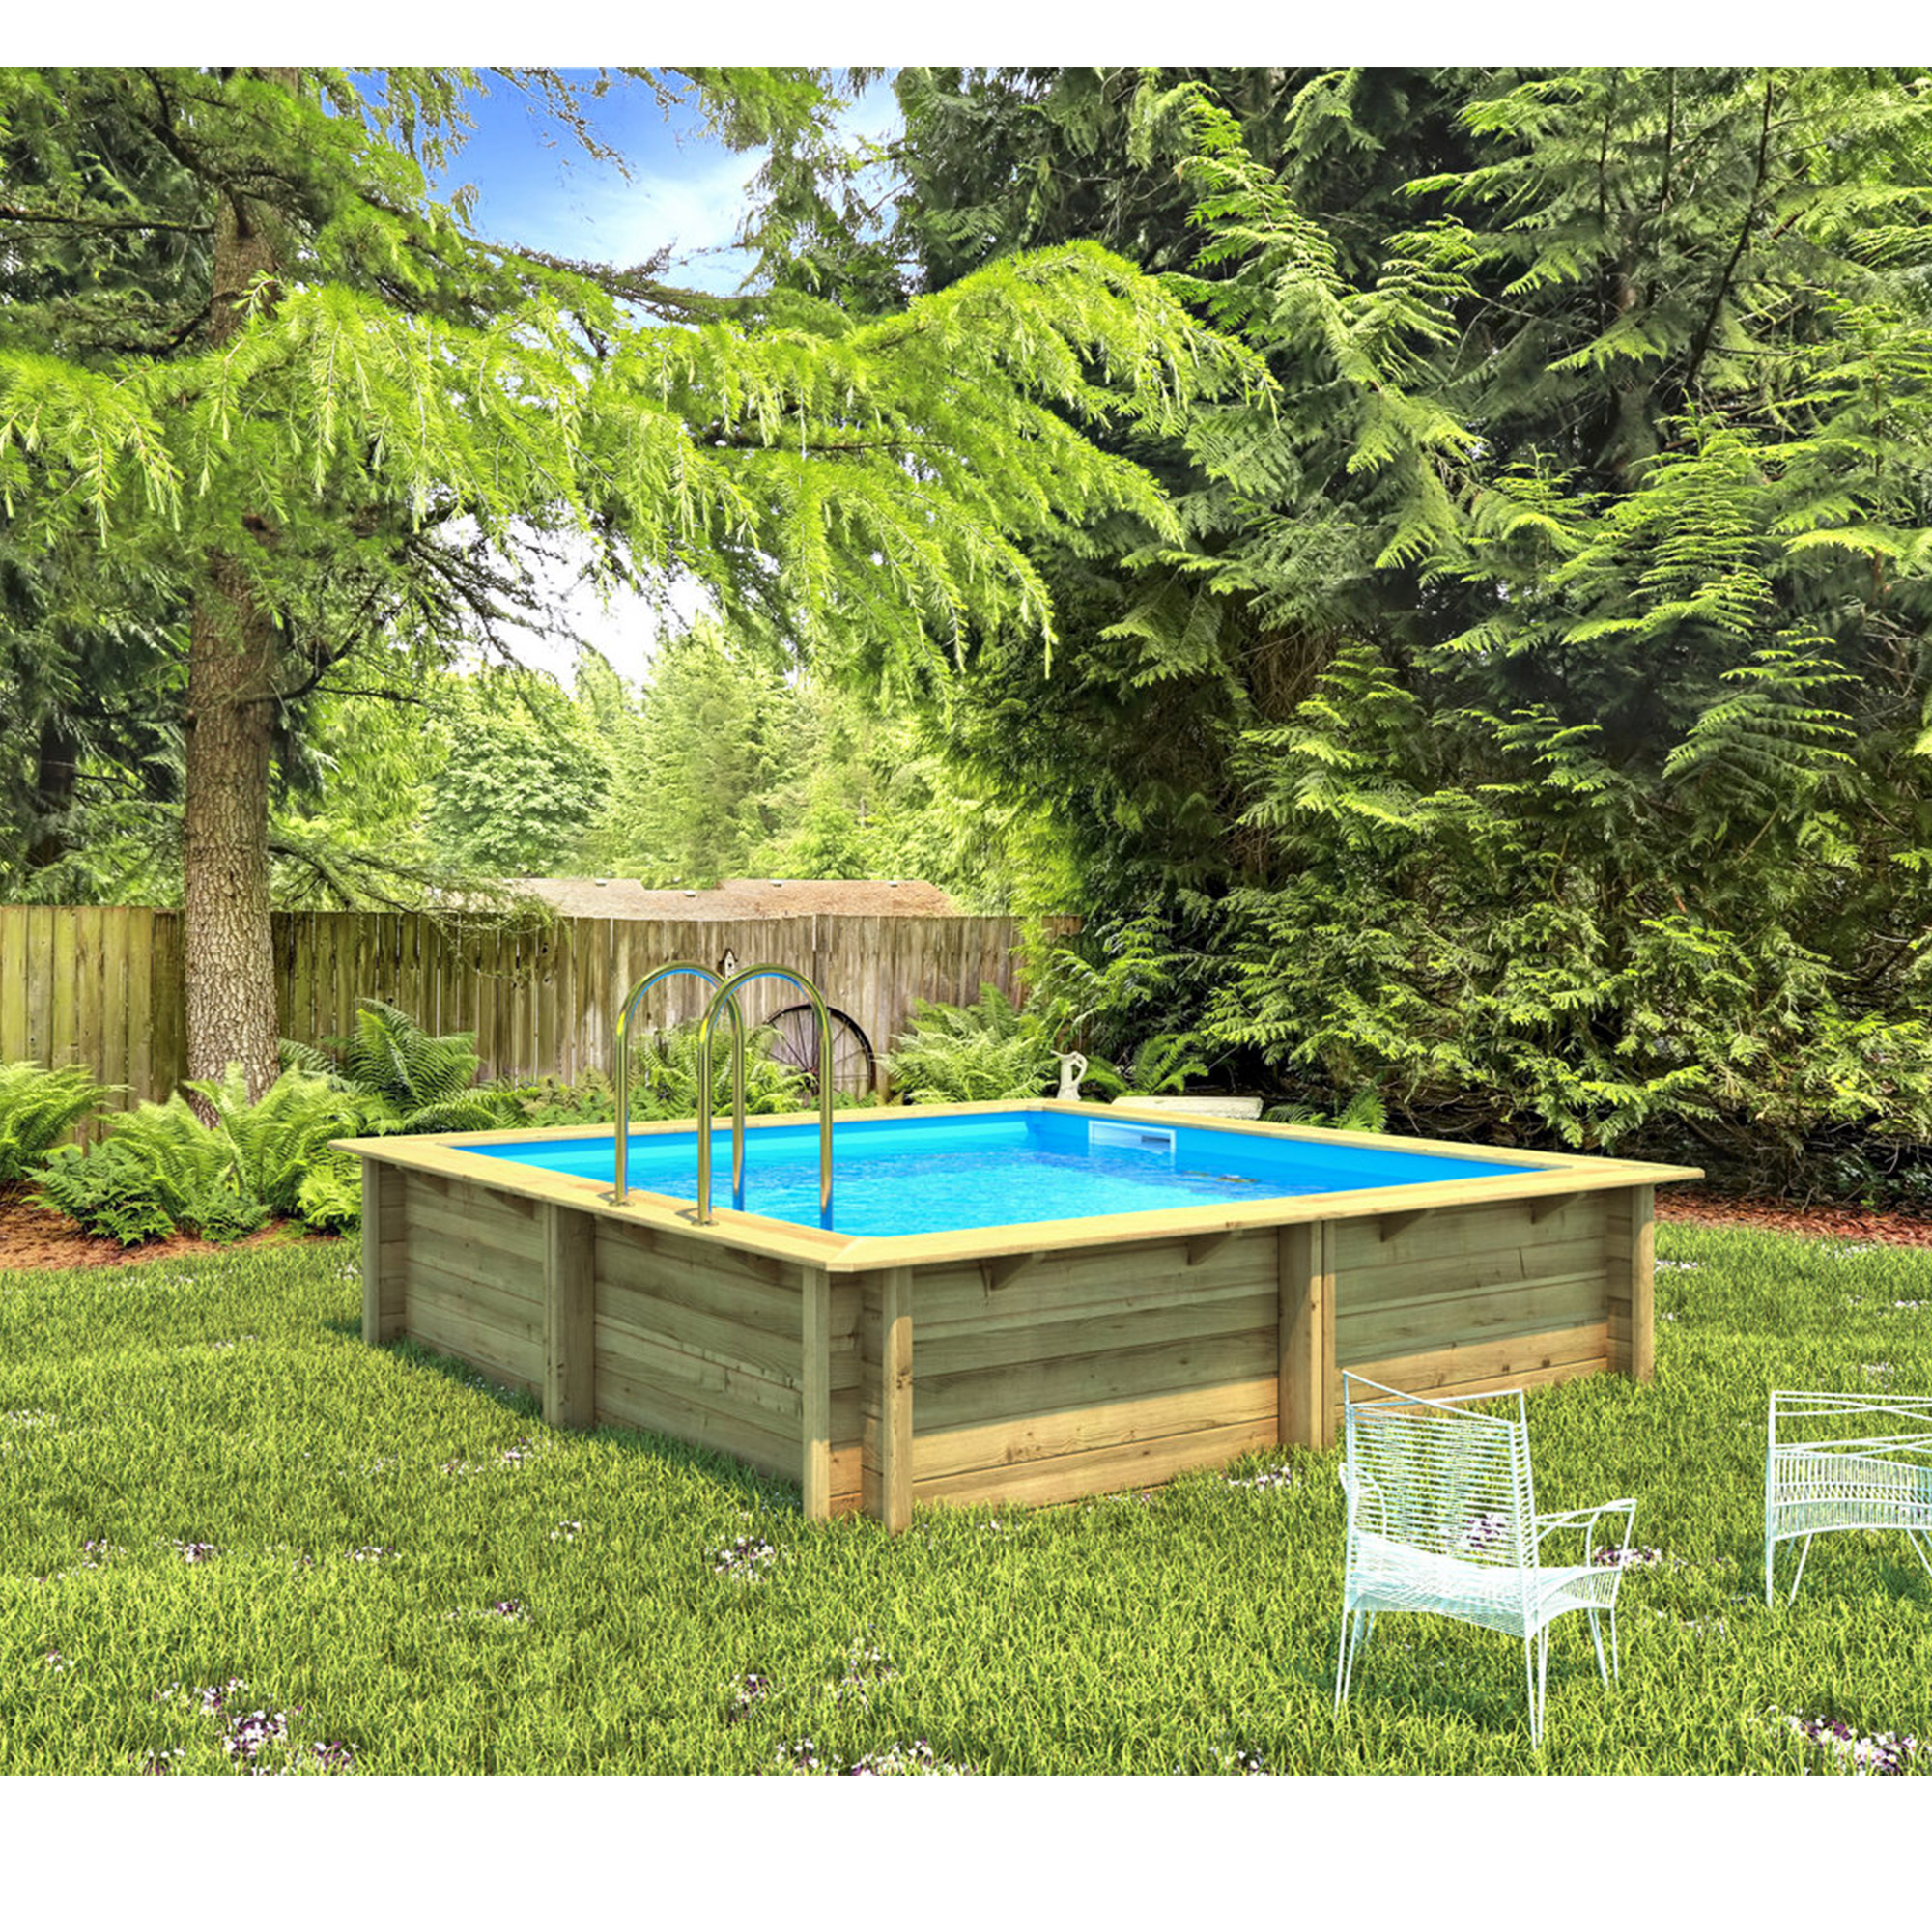 Piscine bois carr e hors sol semi enterr e enterr e for Piscine bois enterre